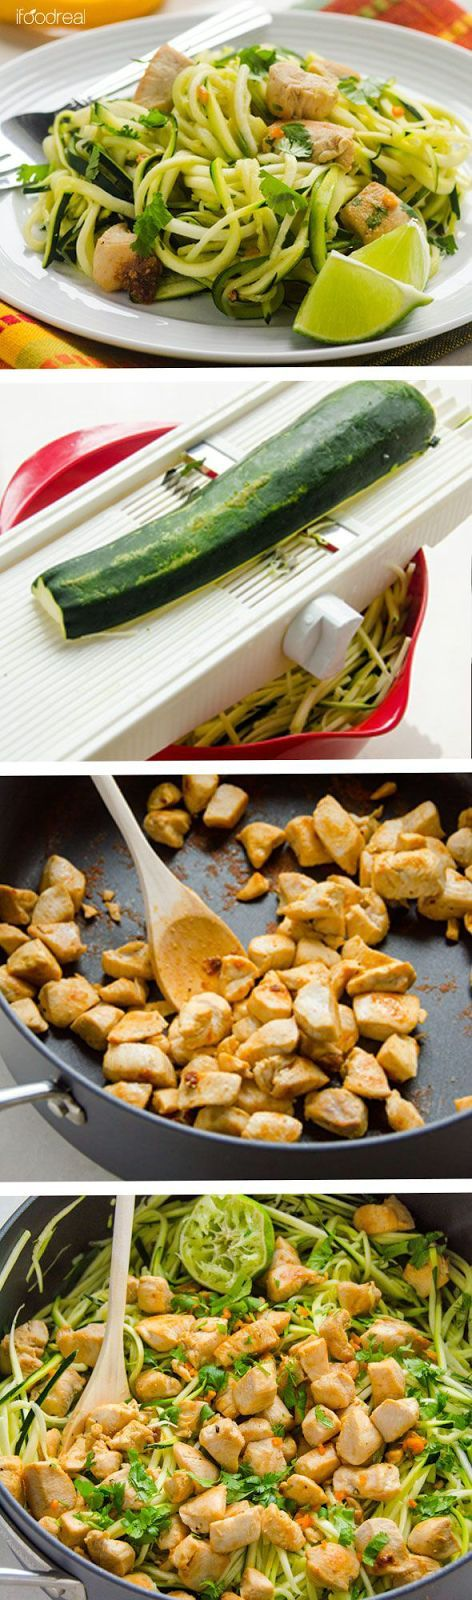 Zucchini Noodles with Cilantro Lime Chicken! #lowcarb